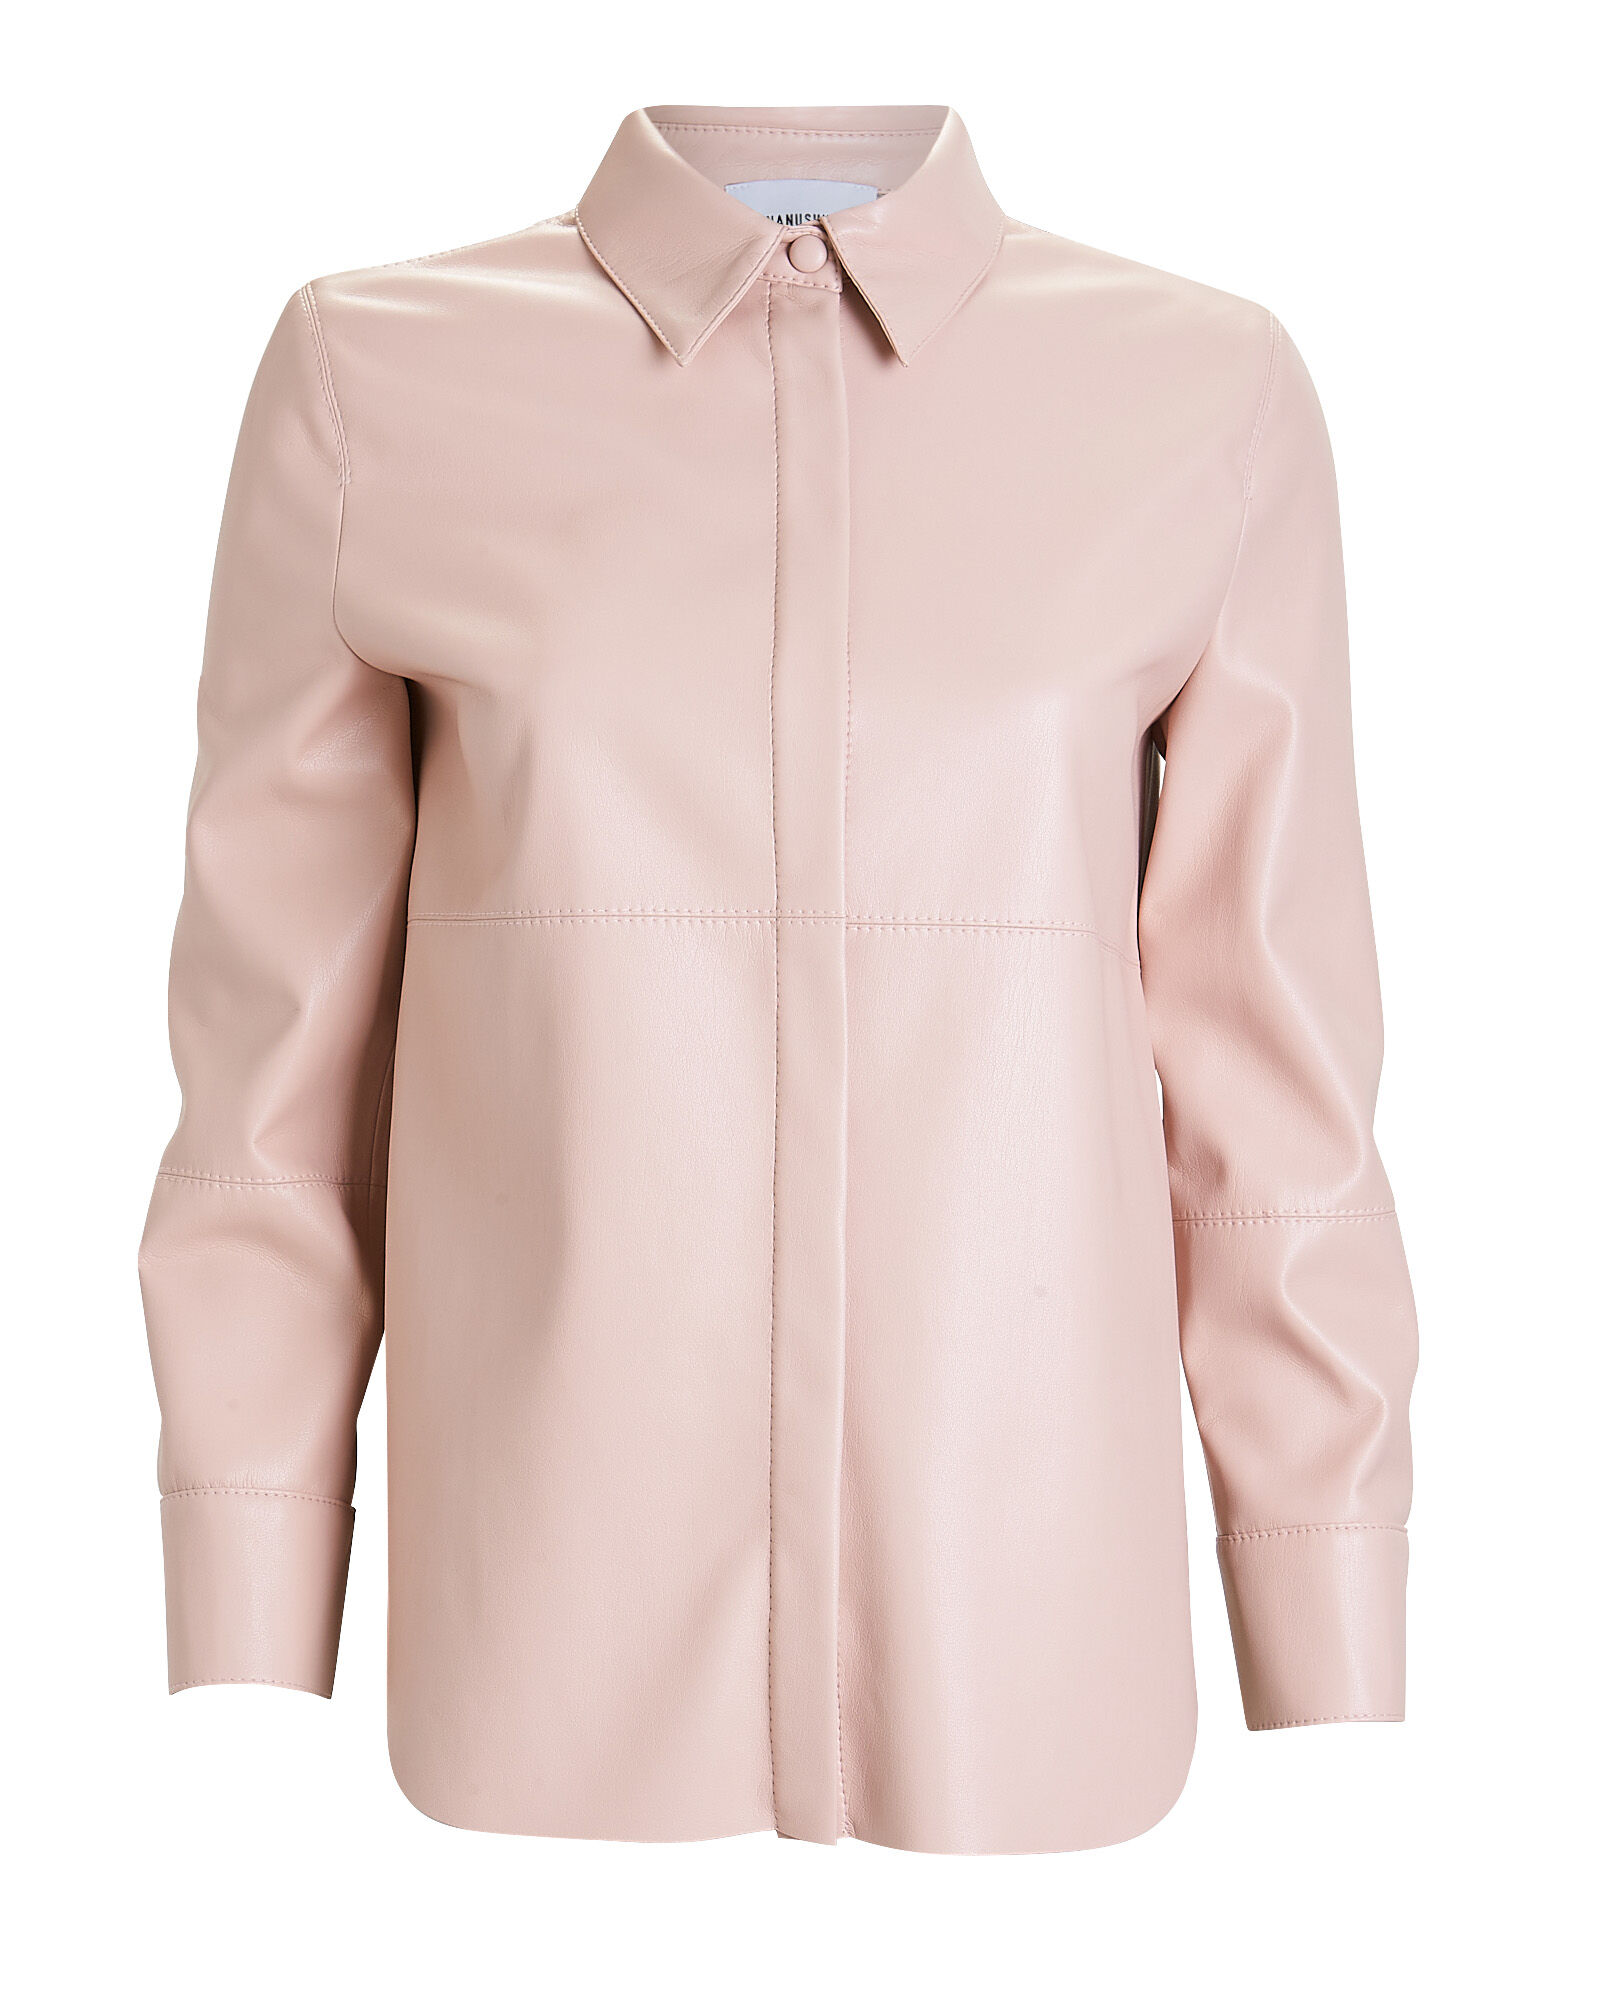 Naum Button Down Top, BLUSH, hi-res